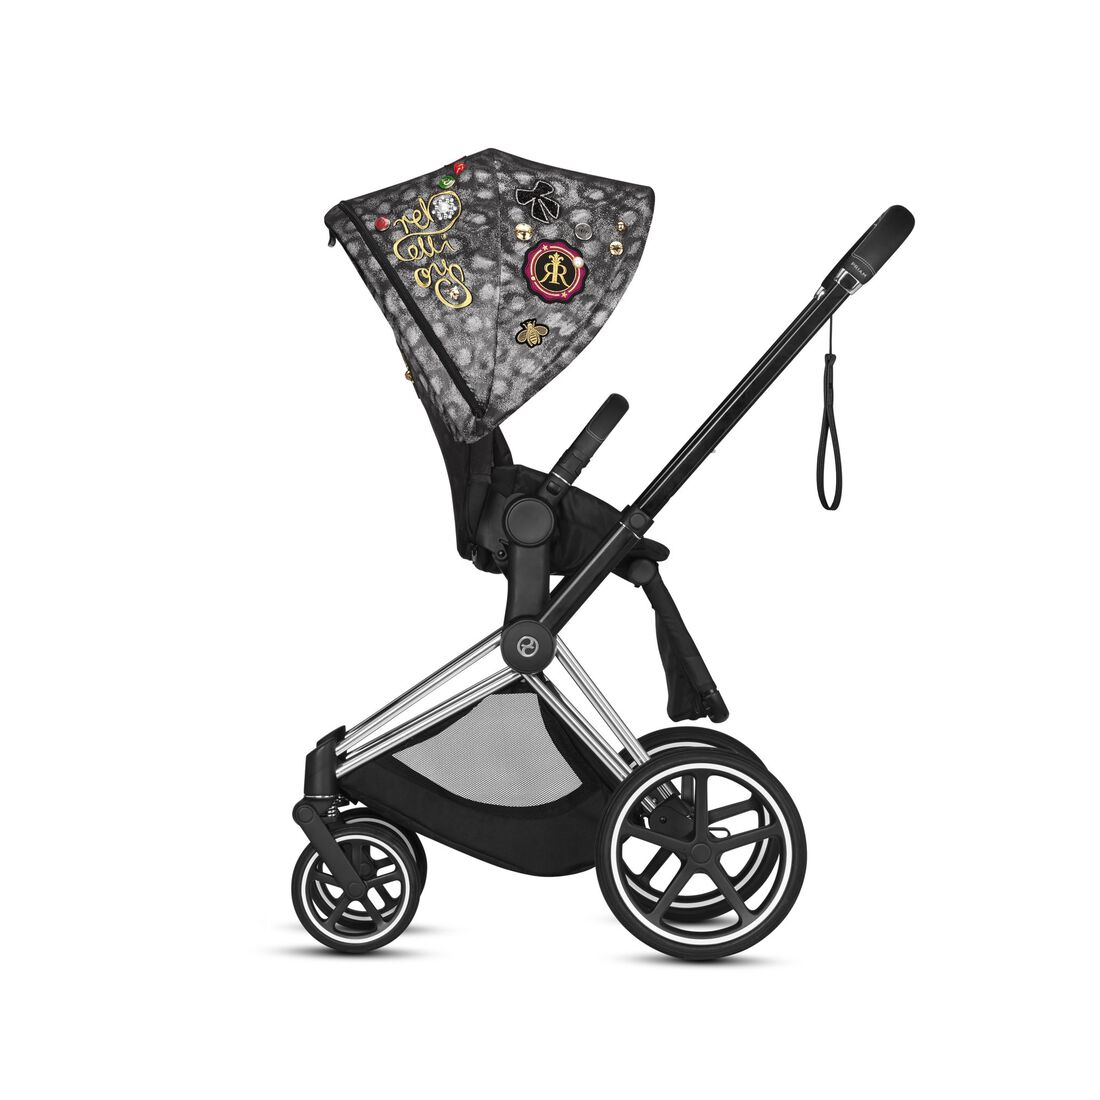 CYBEX Priam Sitzpaket - Rebellious in Rebellious large Bild 2